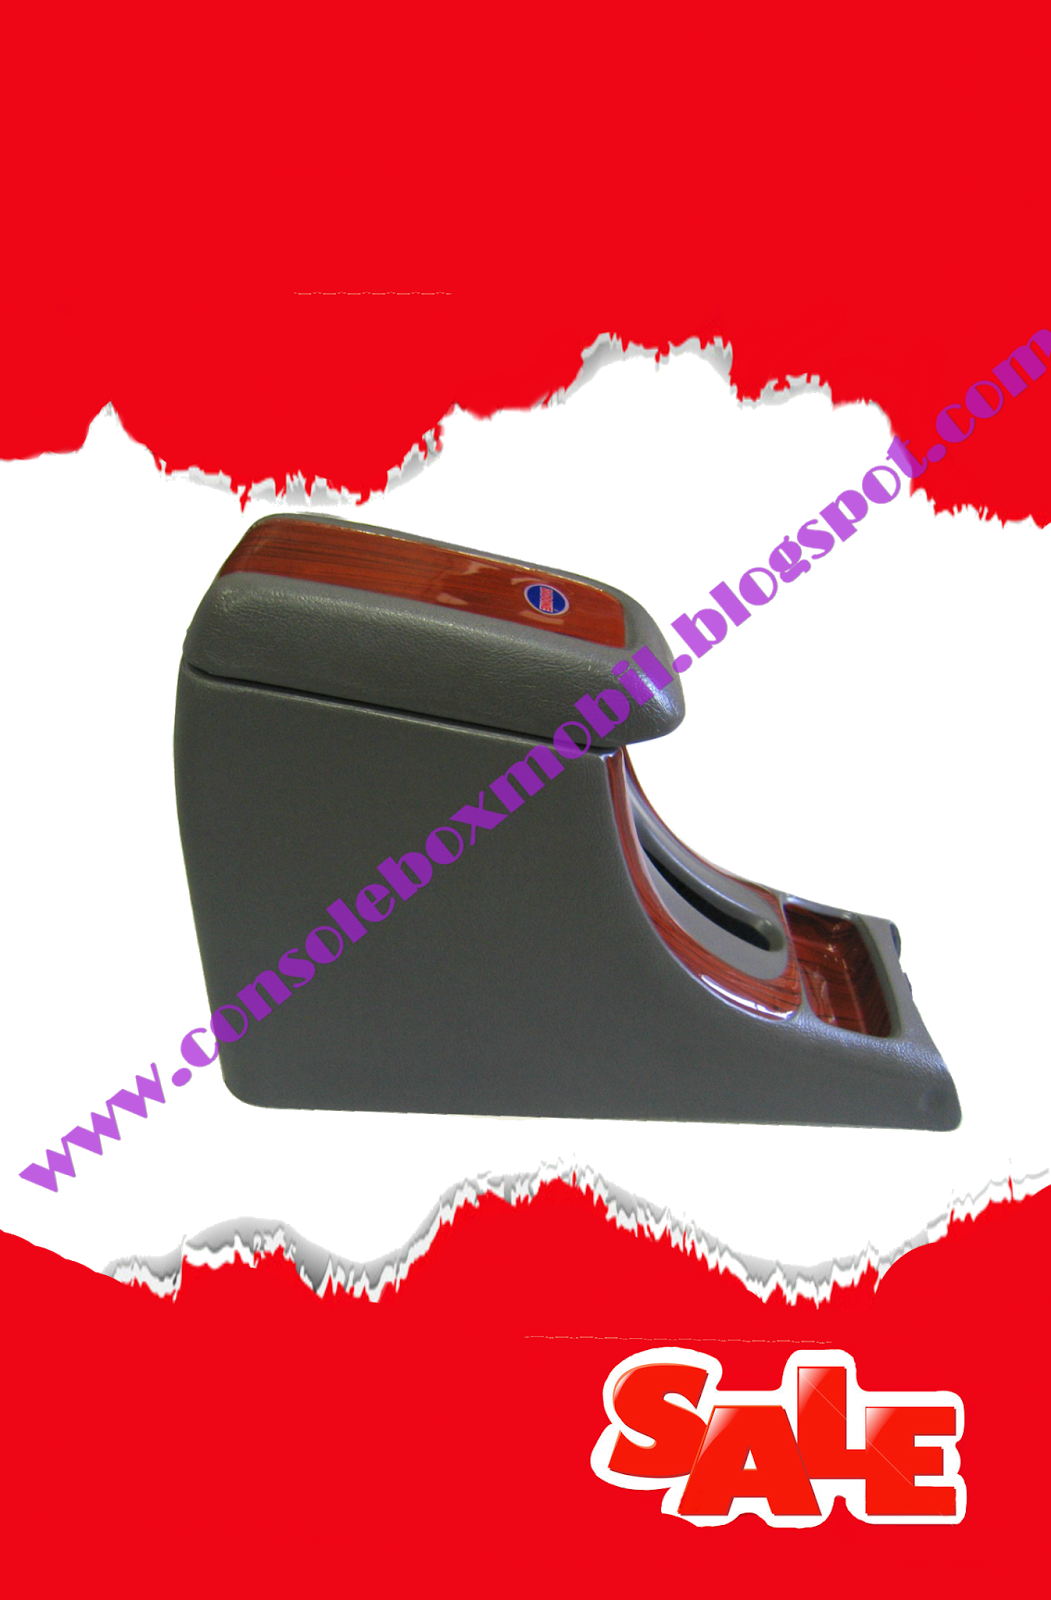 console box grand new avanza panjang 09 abu wood mobil